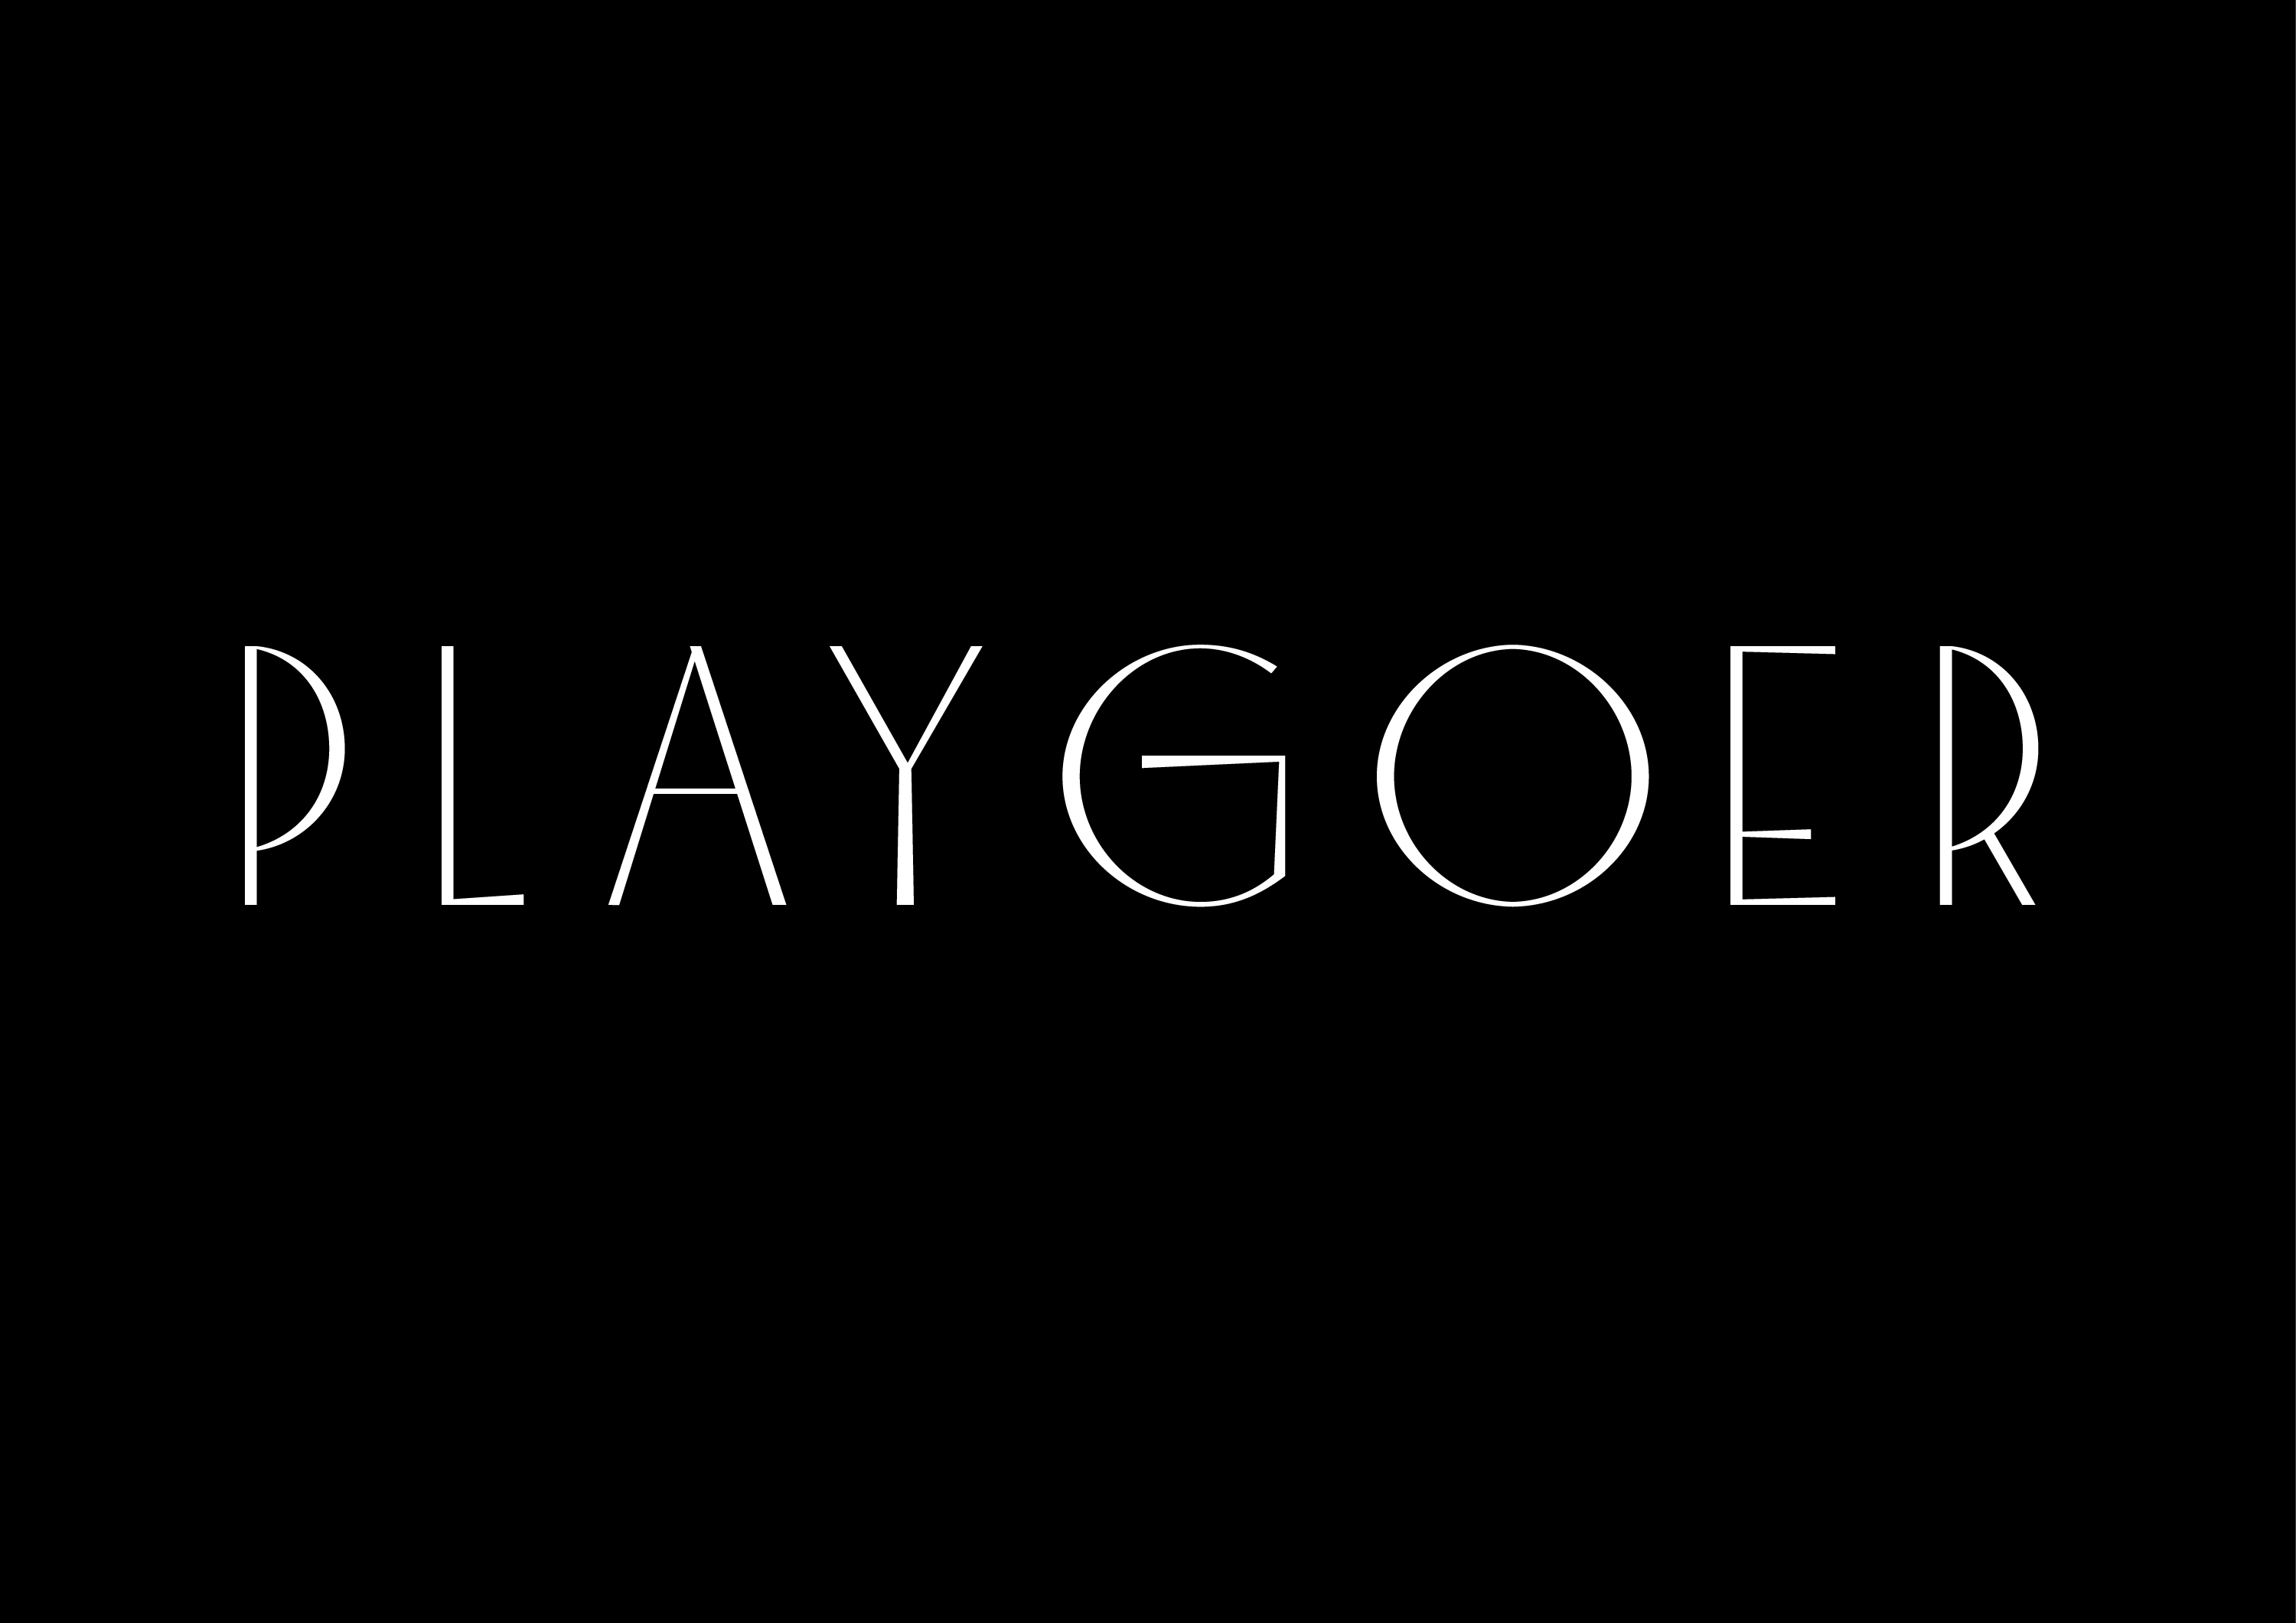 2_playgoer